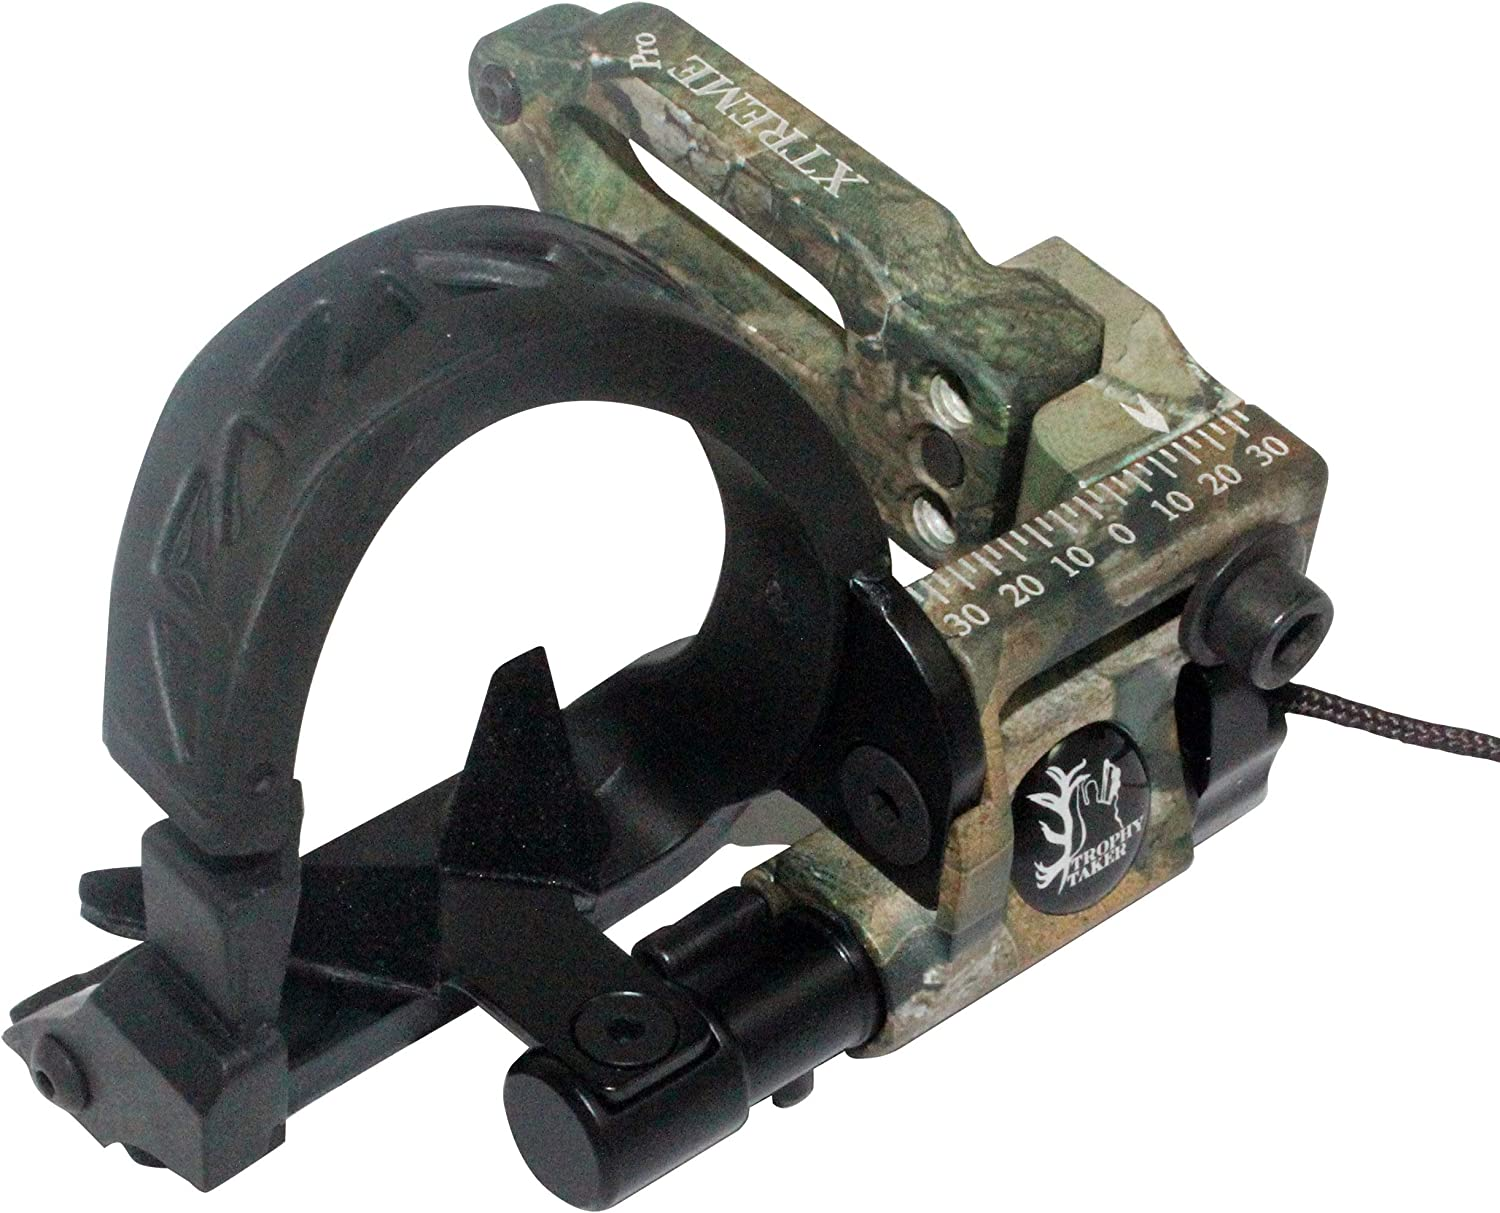 Trophy Taker RH X-Treme Pro Rest Green Max Safety and trust 50% OFF Realtree Xtra